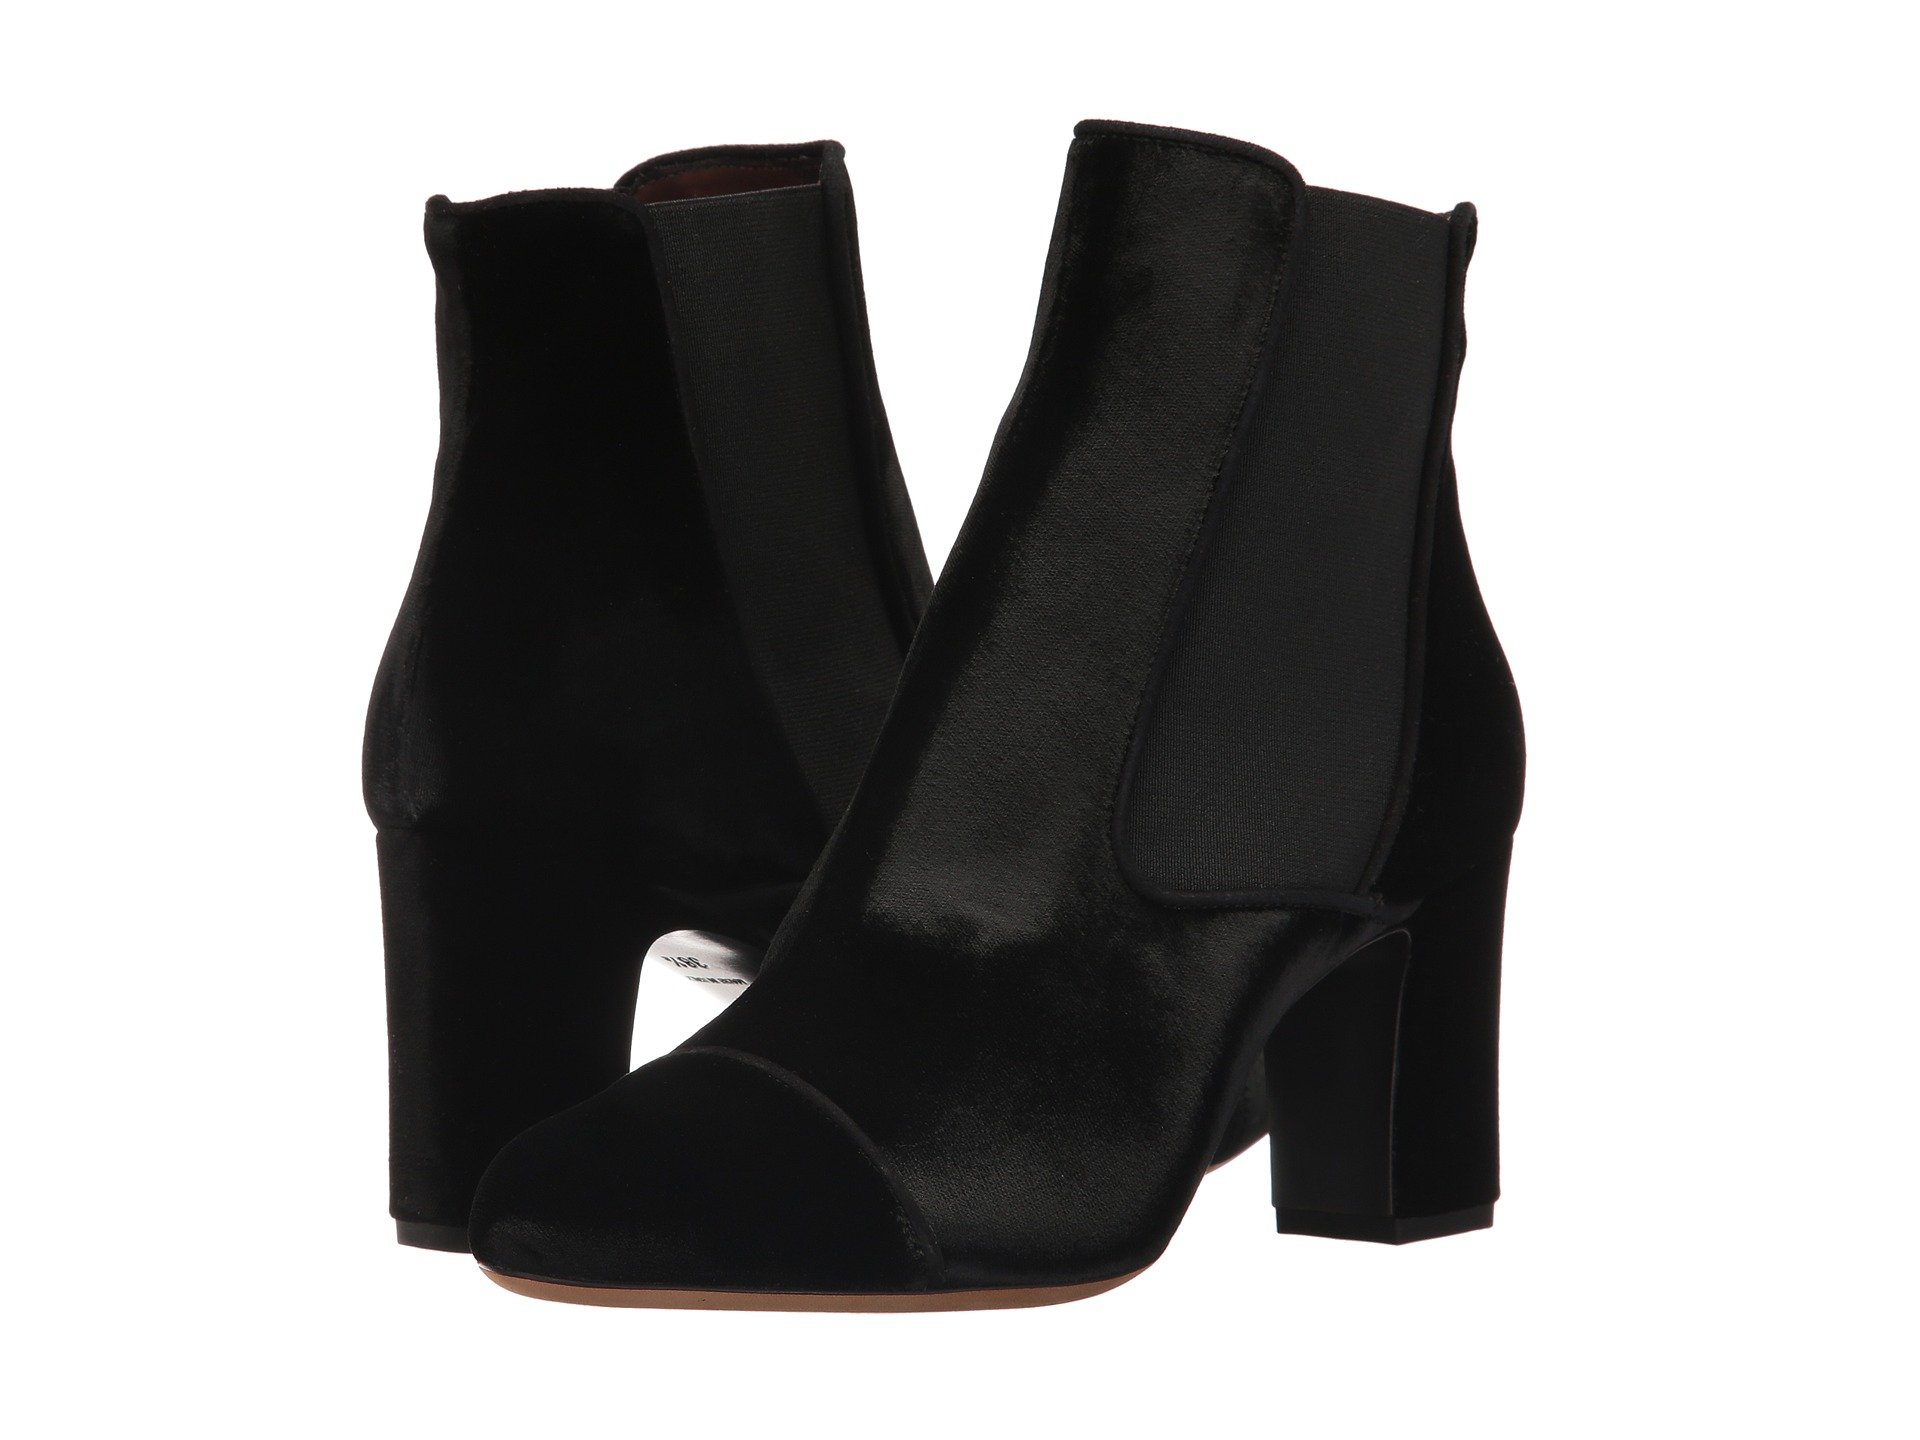 000a8e472 Get Meghan Markle's Black Suede Ankle Boot Style - Meghan's Mirror